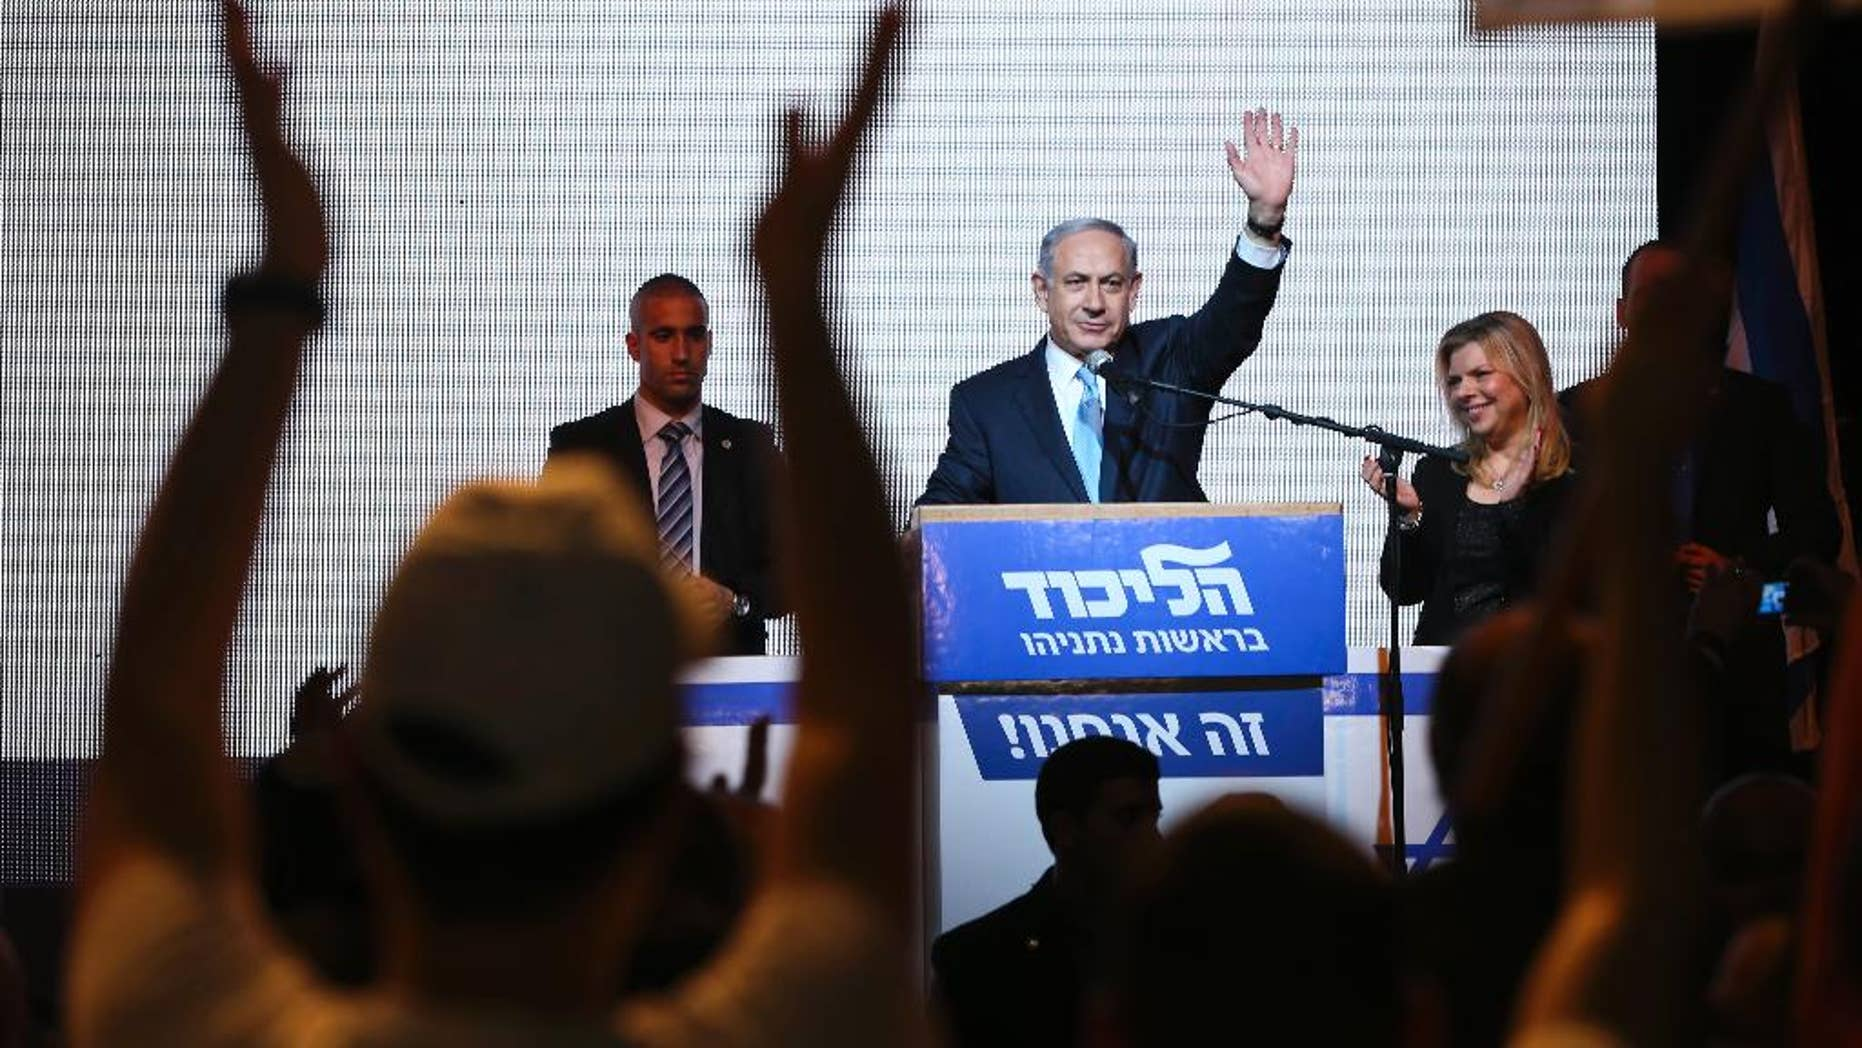 FILE - In this March 17, 2015 file photo, Israeli Prime Minister Benjamin Netanyahu greets supporters at the party's election headquarters in Tel Aviv, Israel. Netanyahu's Likud won 30 seats in the 120-seat parliament, and parties apparently willing to back him won another 37 for a possible majority. The reasons for that outcome go beyond the party's nationalist ideology and include Israel's sense of geographic vulnerability, its fragmented politics and a master campaigner in Netanyahu himself. (AP Photo/Oded Balilty, File)